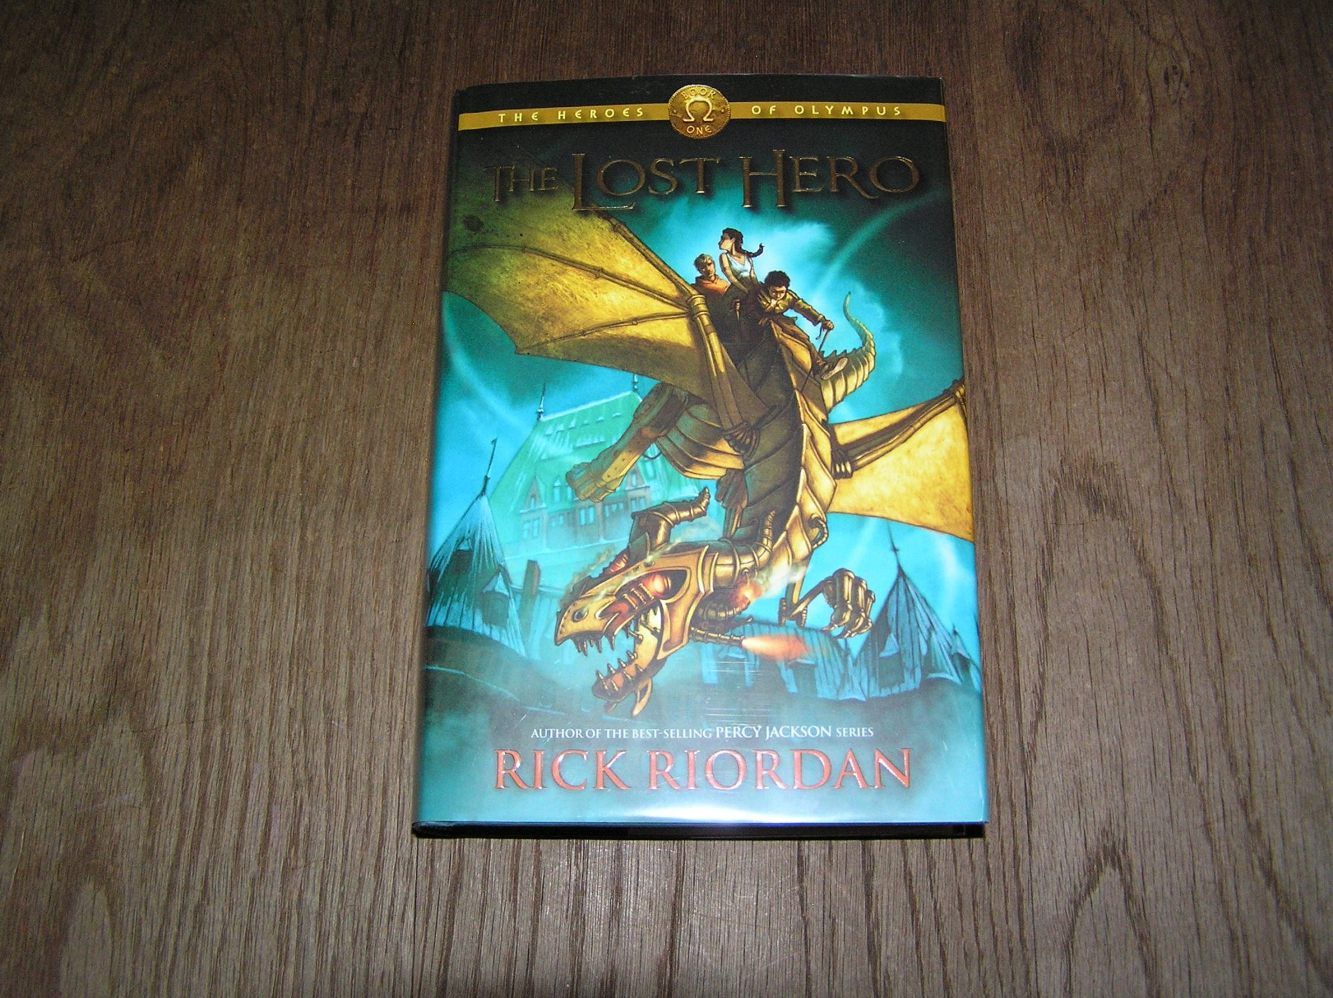 the lost hero by rick riordan Heroes of olympus: the lost hero e-book winkstore was founded in 2009 with the vision of \93delivering a cost effective electronic book reader and reading content in english and all indian languages for the indian market.